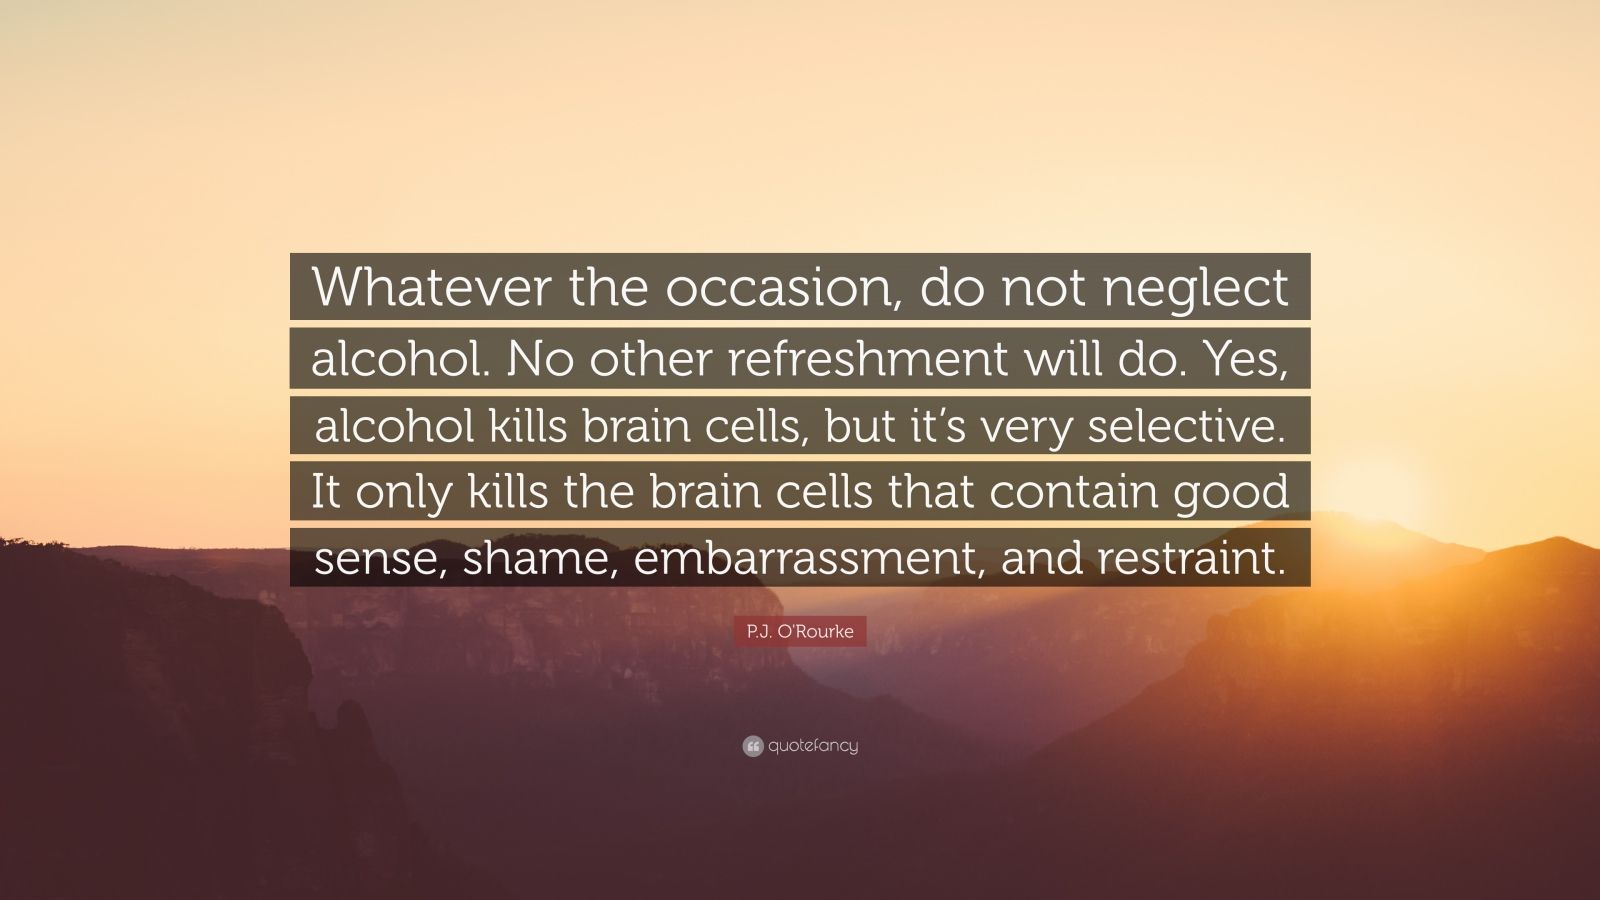 """P.J. O'Rourke Quote: """"Whatever the occasion, do not neglect alcohol. No other refreshment will do. Yes, alcohol kills brain cells, but it's very selective. It only kills the brain cells that contain good sense, shame, embarrassment, and restraint."""""""